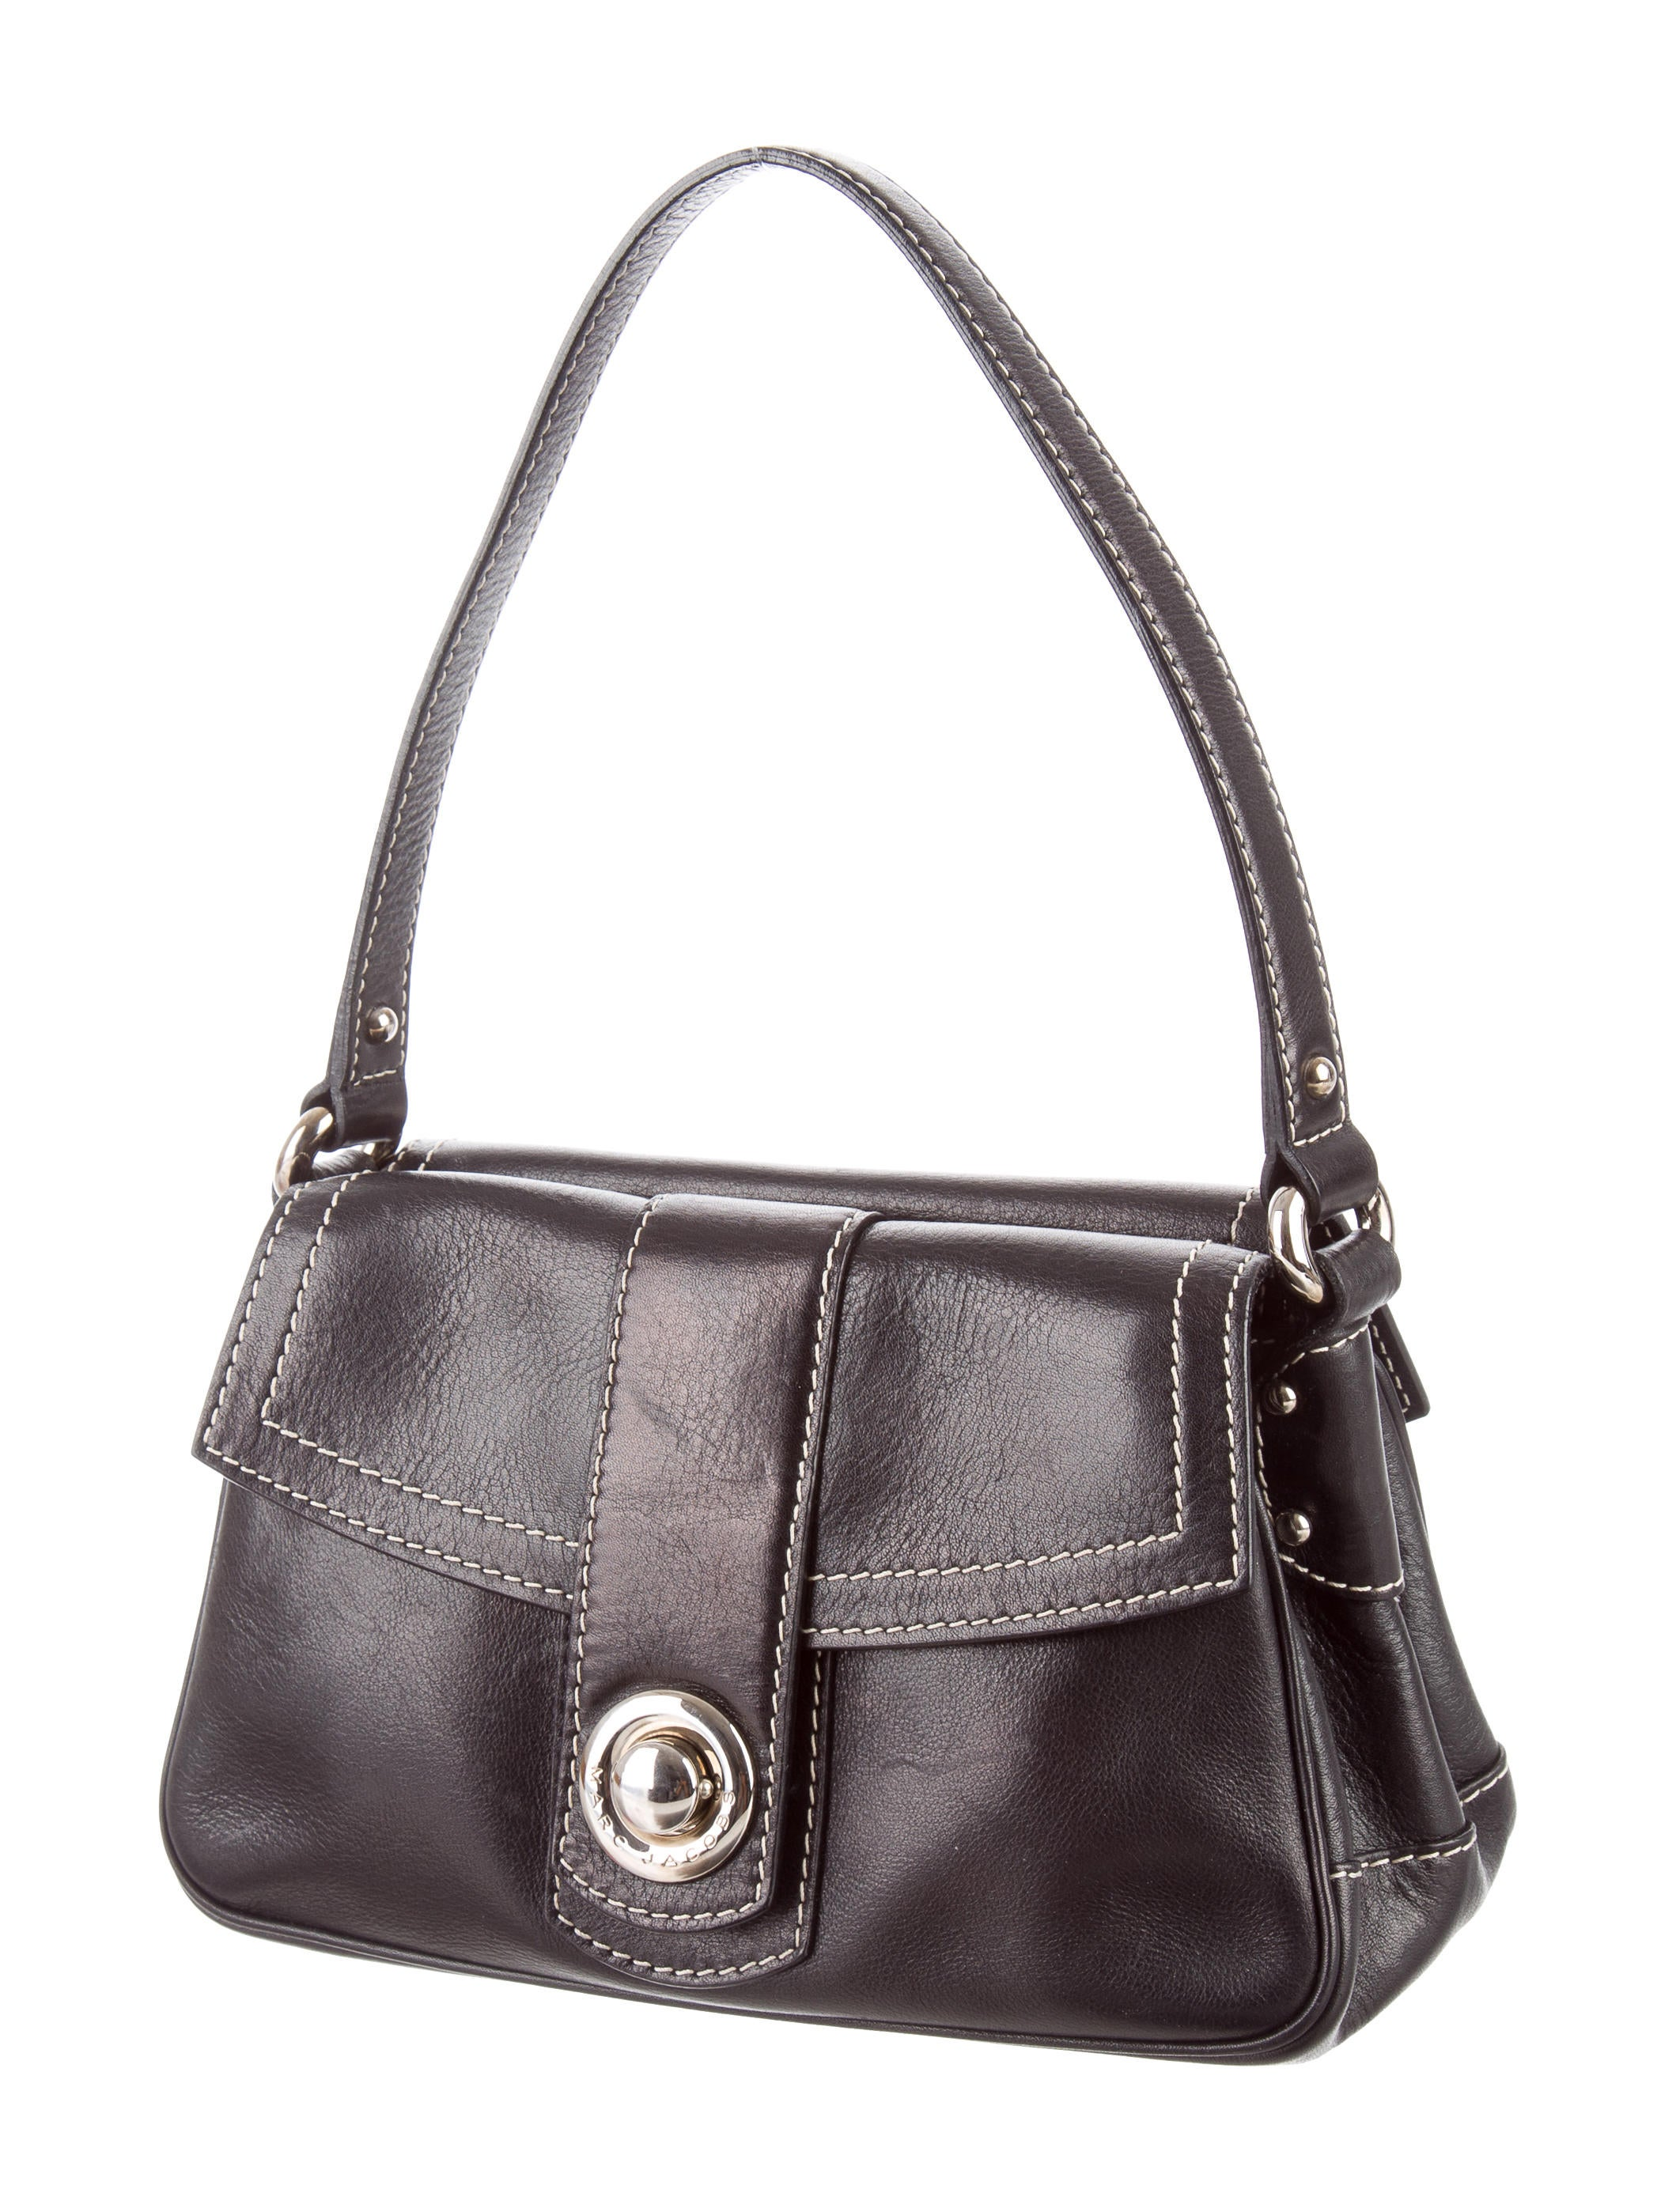 Mini Shoulder Bag Handbag